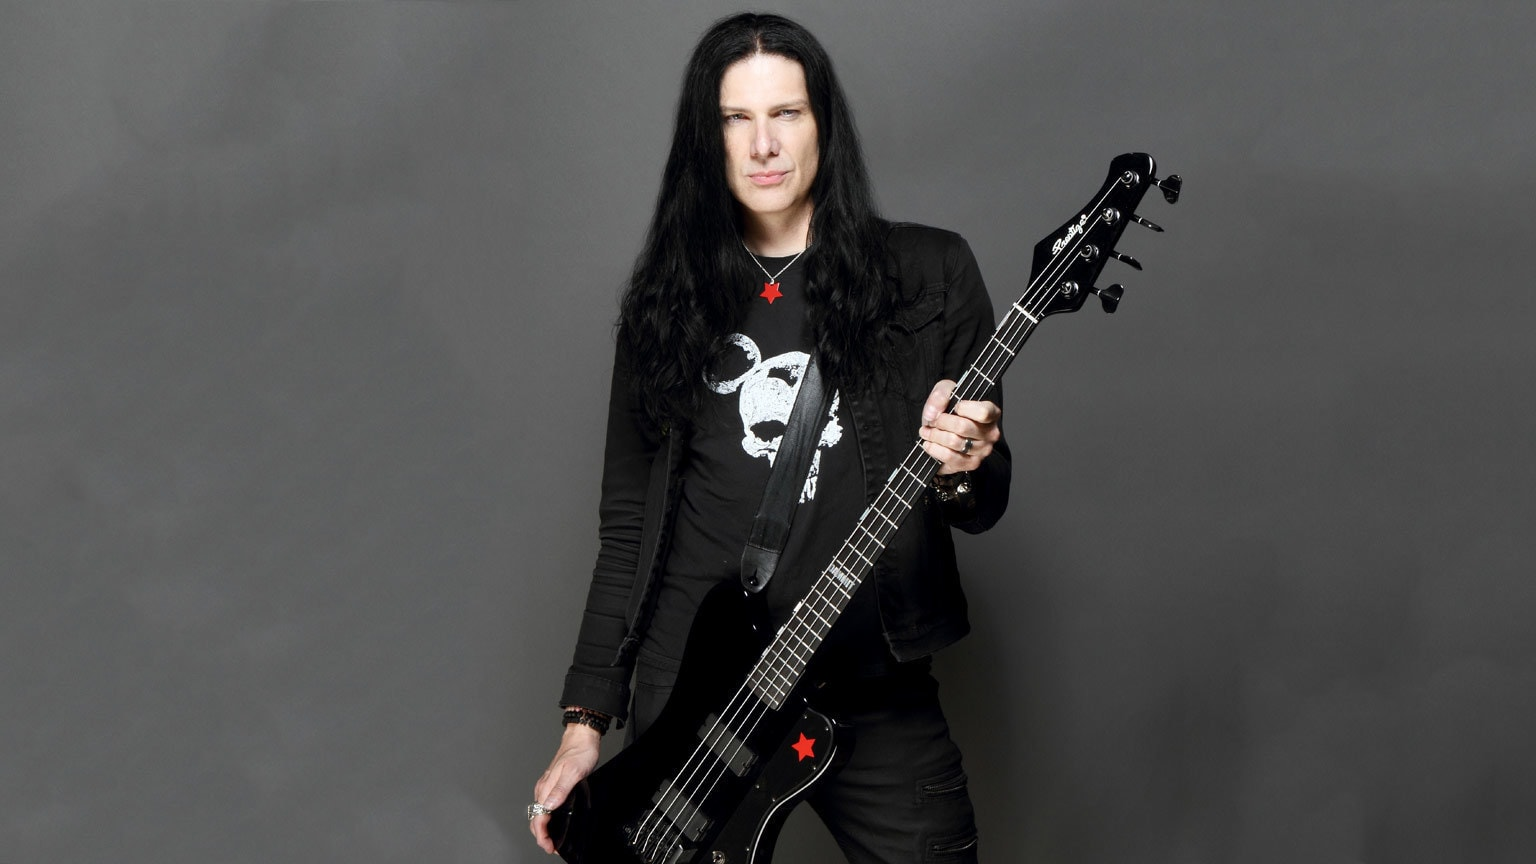 Todd Kerns Wants to Play a Gig on Tatooine